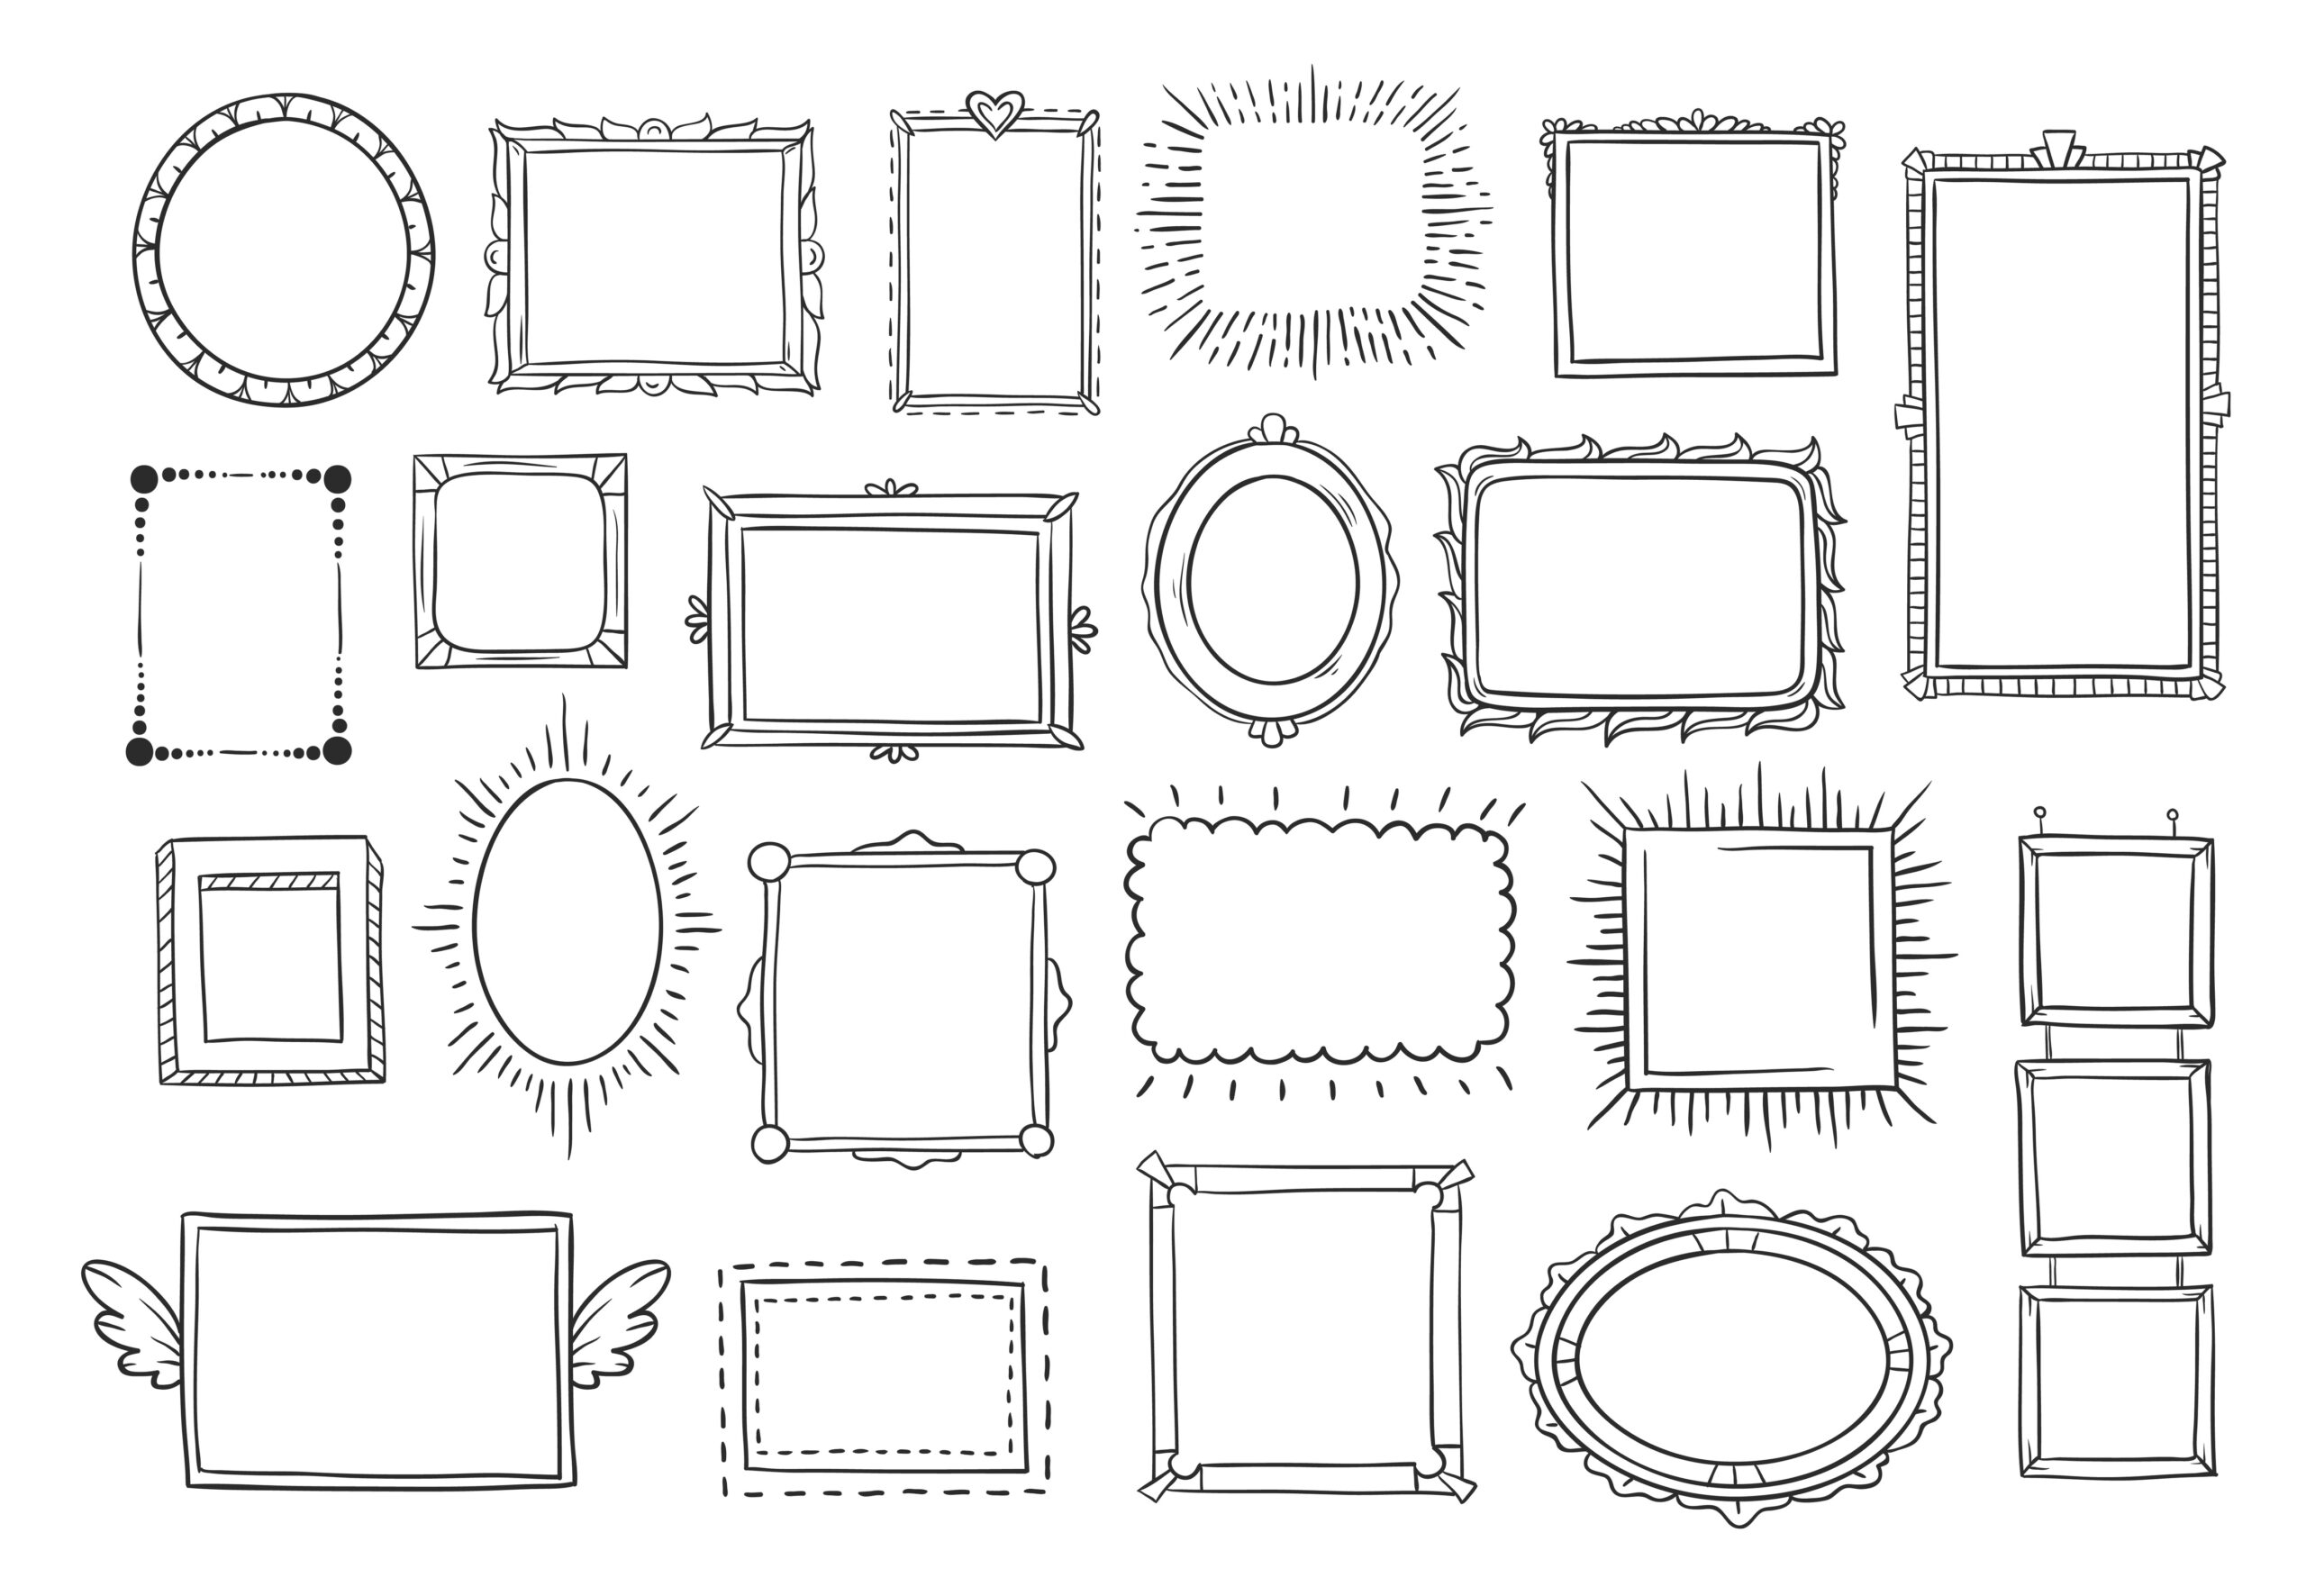 Hand drawn frames. Vintage doodle sketch picture frame doodle labels. Blank black square cadre rectangle label elegant sketches painted by hands scribble border vector isolated icon set